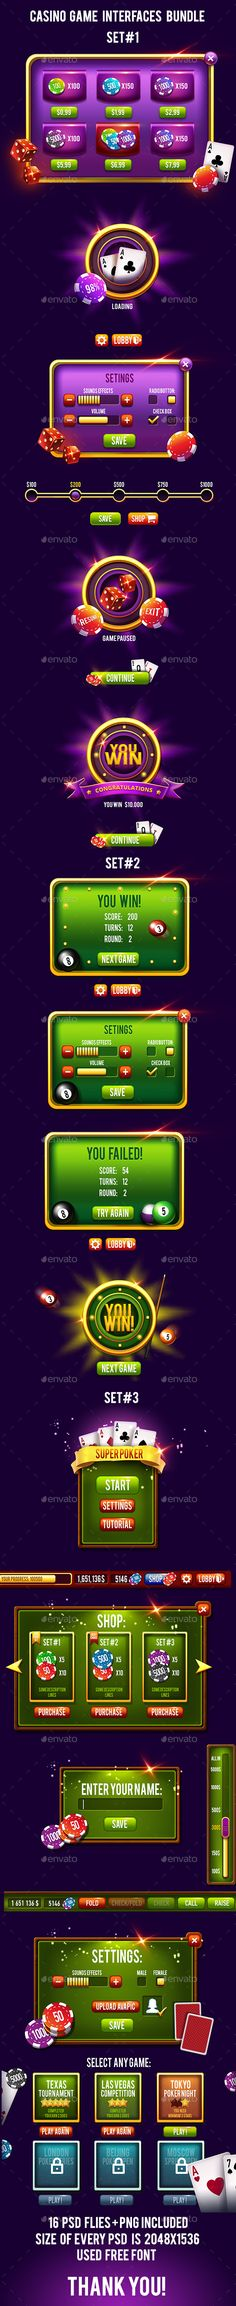 Casino Game Interface Bundle PSD, Transparent PNG. Download here: https://graphicriver.net/item/casino-game-interface-bundle/17506085?ref=ksioks